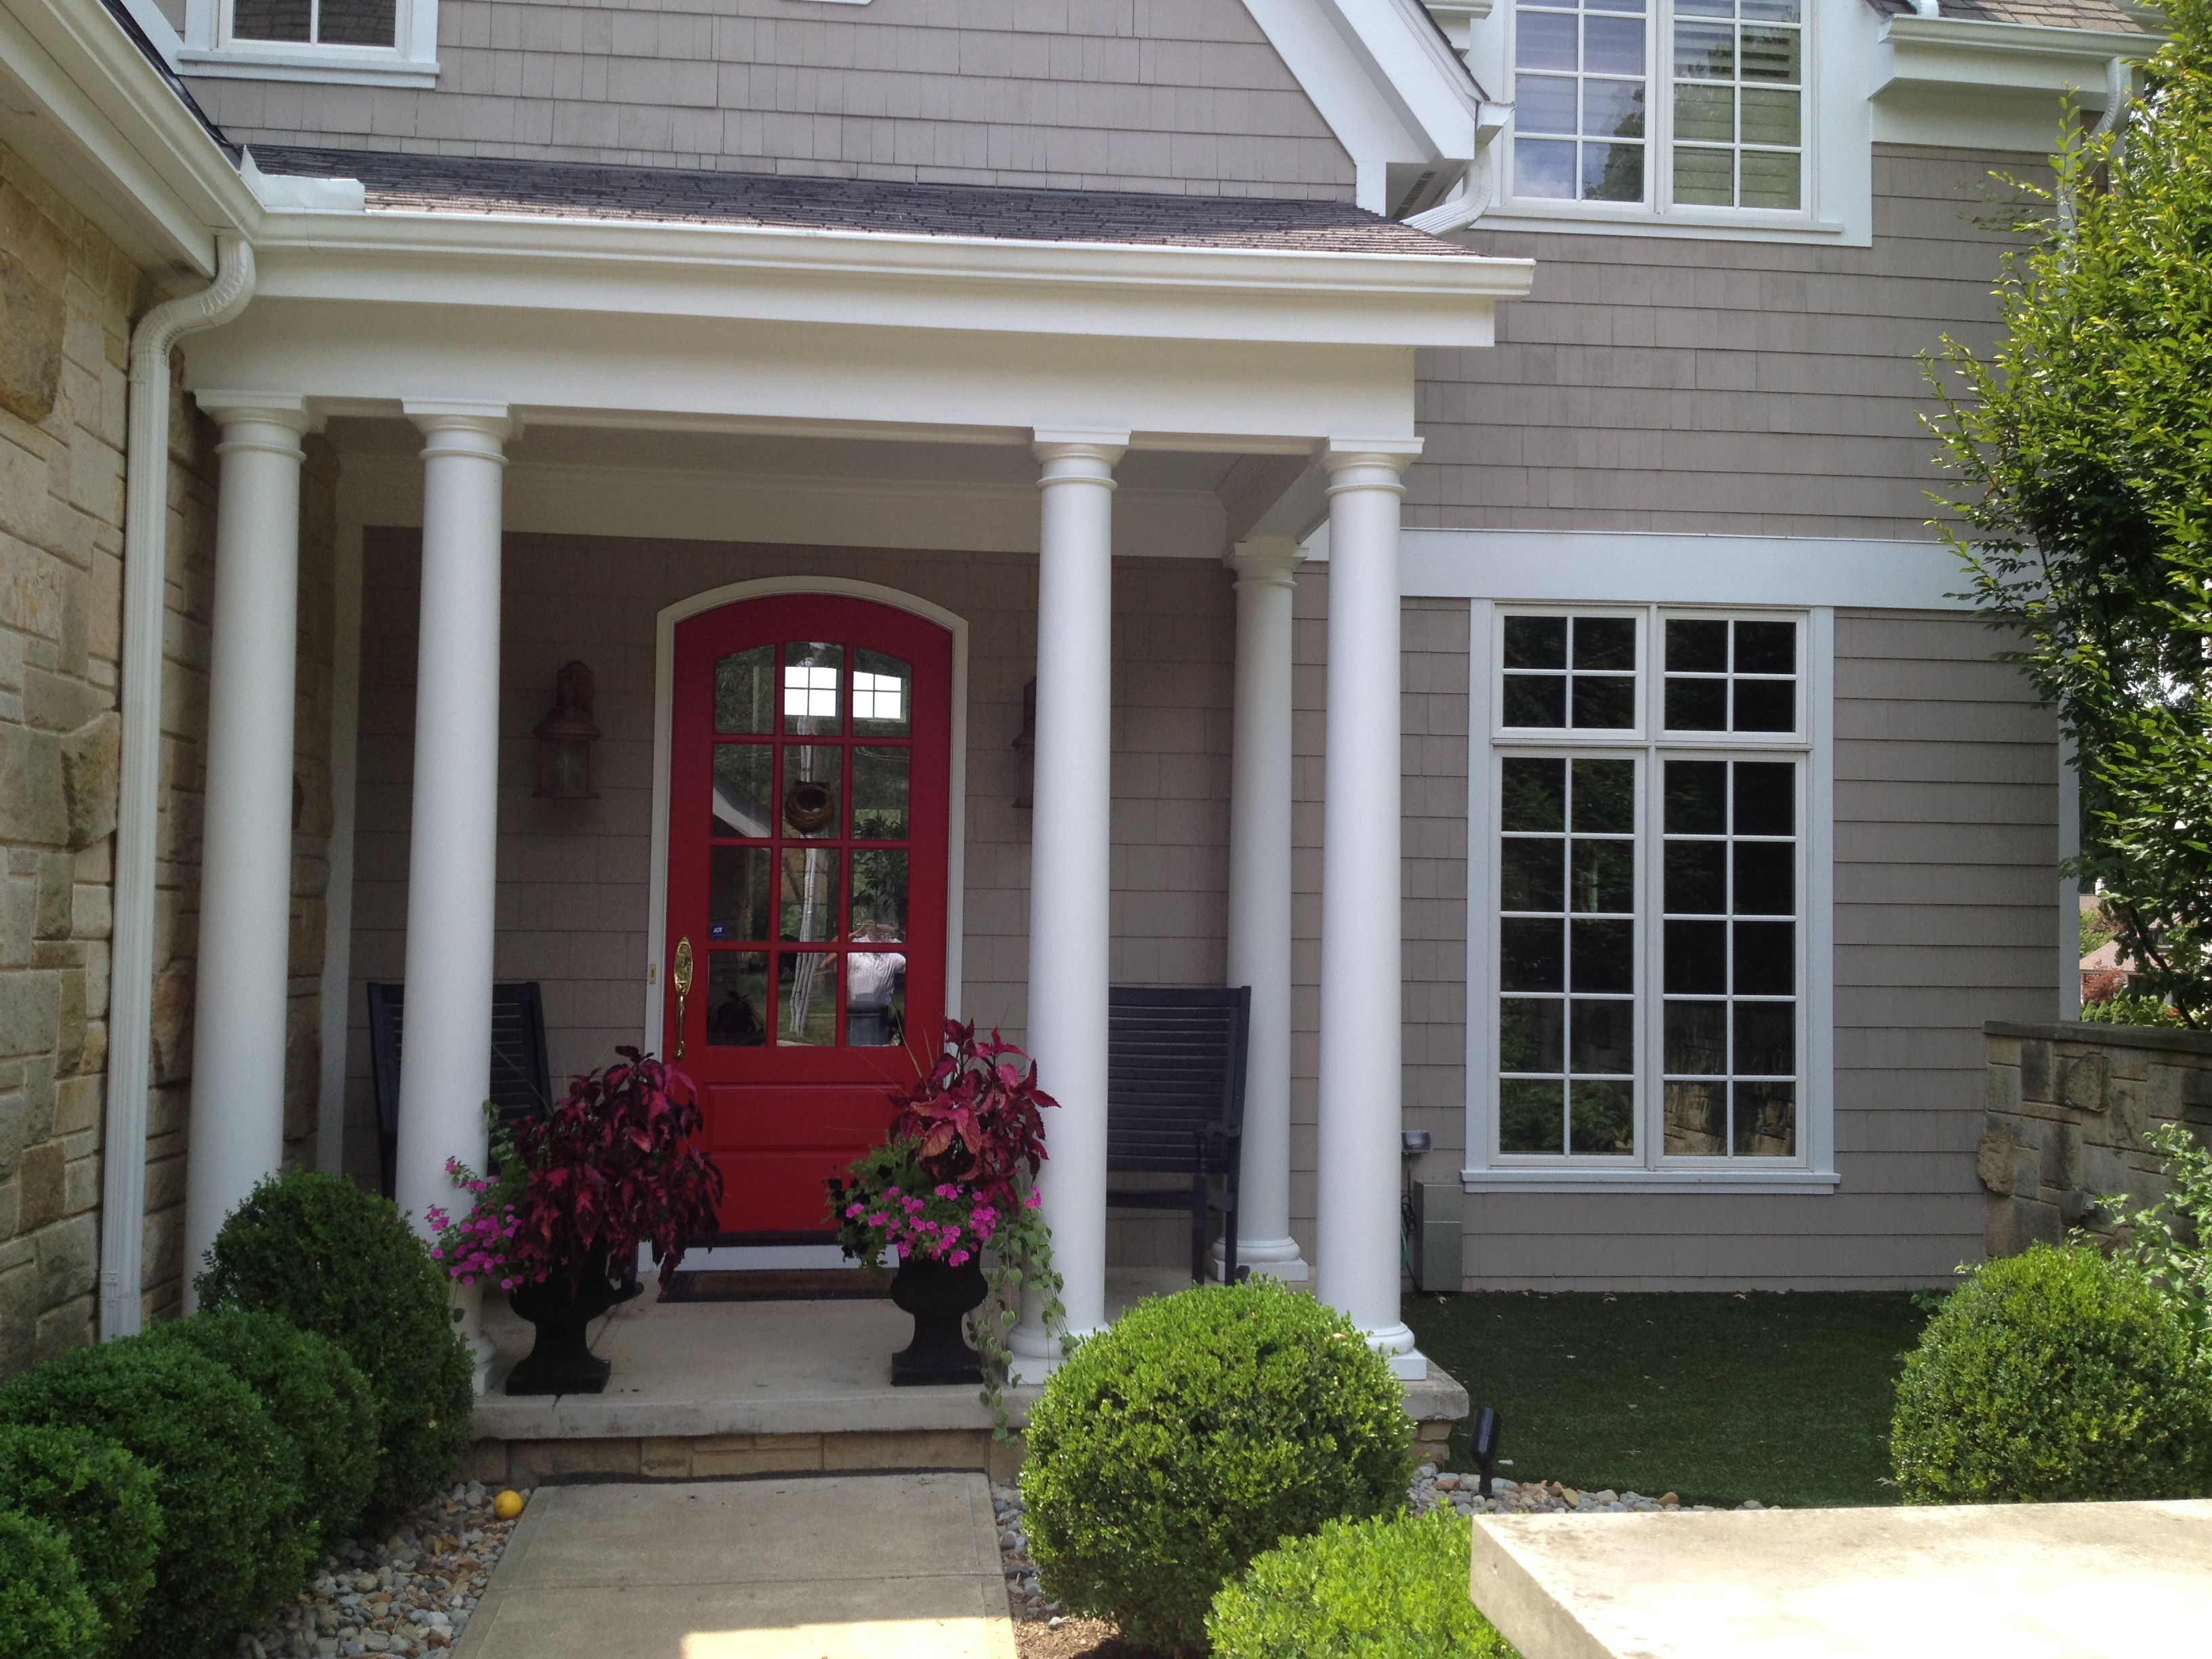 Exterior house color schemes with black shutters - Greige With White Trim And A Red Accent Door Black Or Dark Navy Shutters Would Exterior House Paint Colorsexterior Paint Ideasvinyl